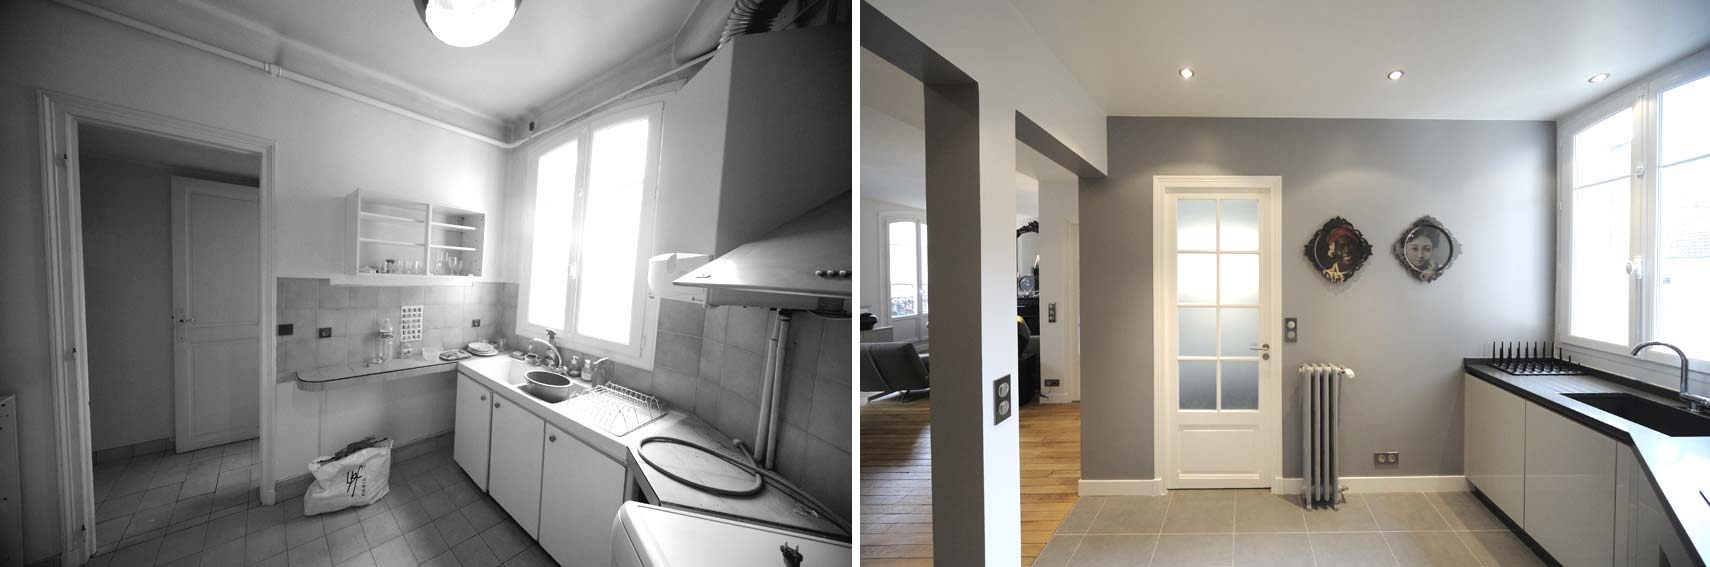 Avant apr s transformation d 39 un appartement de 65m2 du for Relooking interieur avant apres